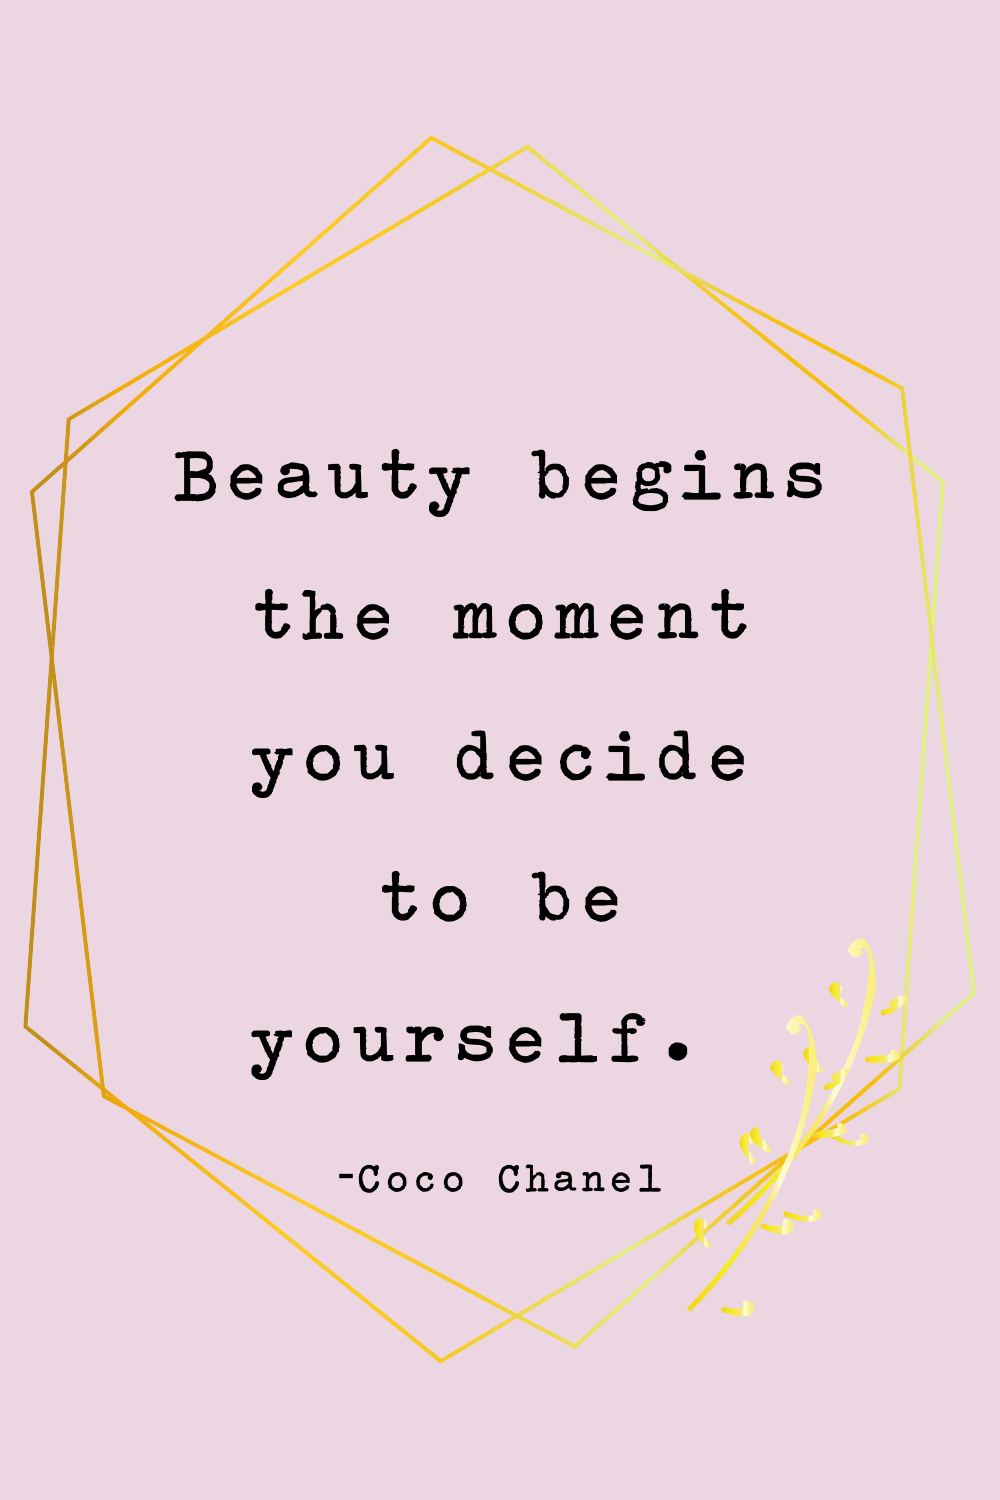 50 Inspiring Self Confidence Quotes to Celebrate Being You